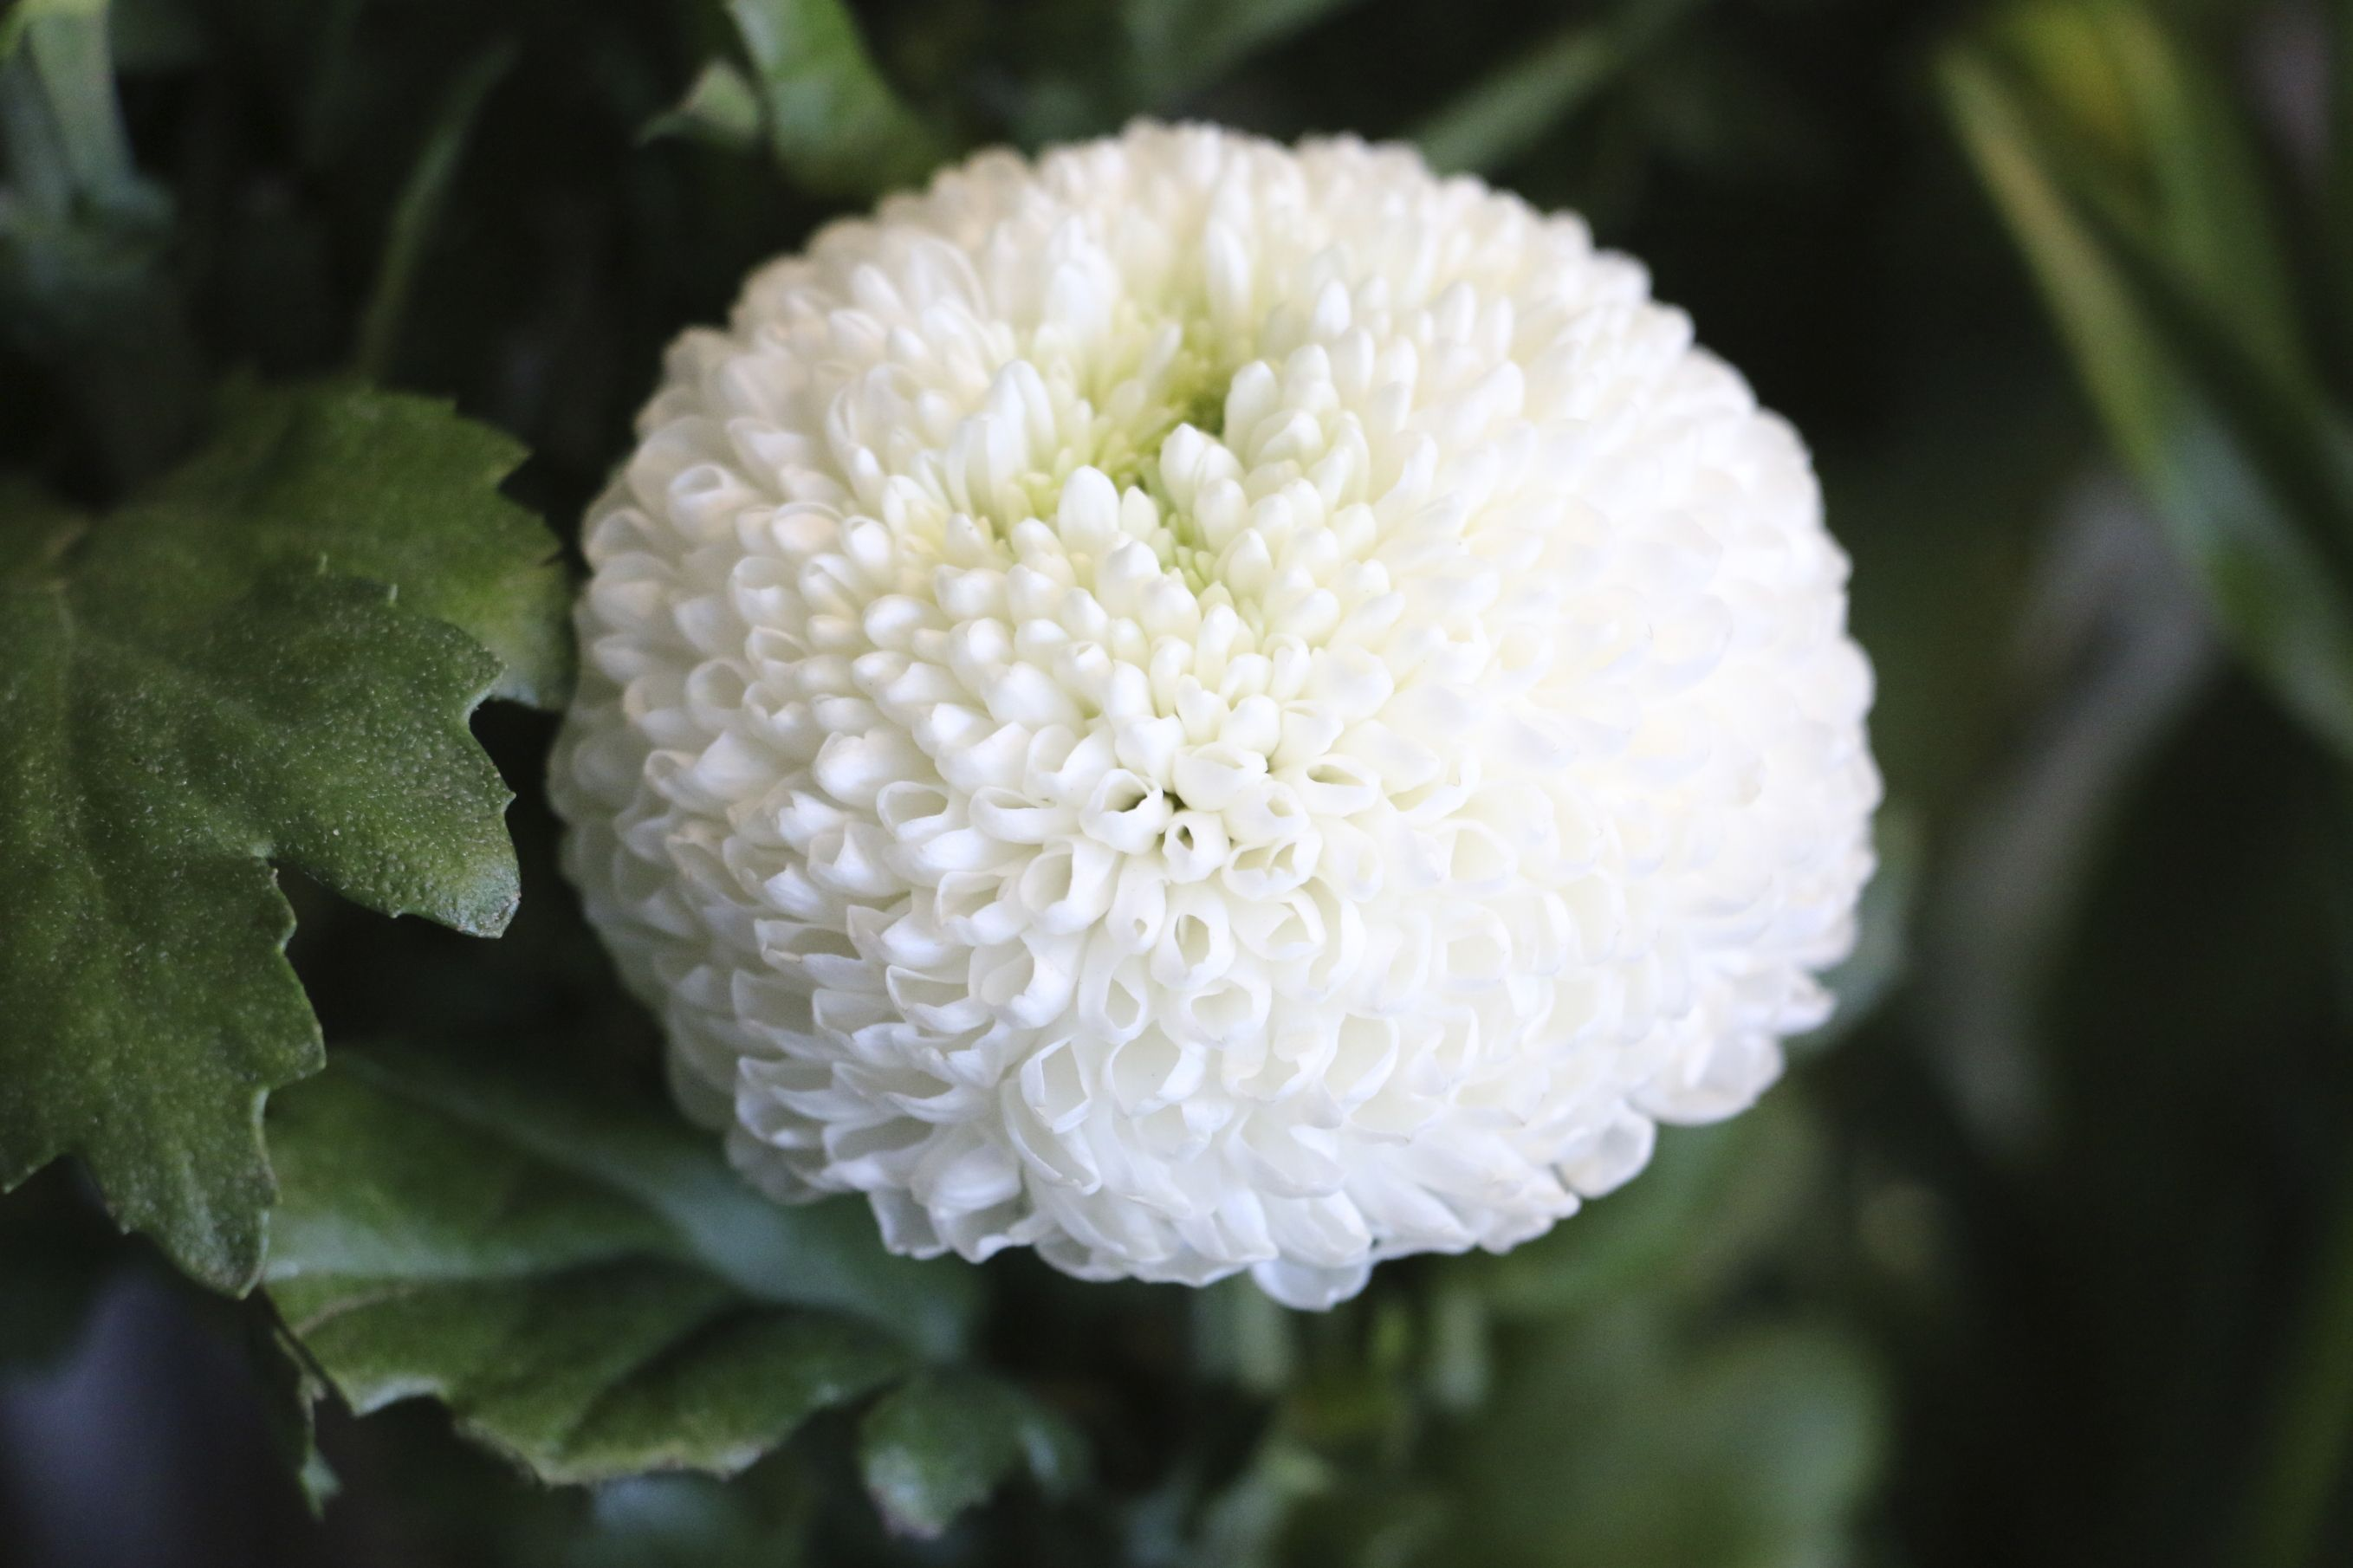 Pompom Chrysanthemums Look Like Big Fluffy Cotton Wool Balls Potted Mums Flowers White Chrysanthemum